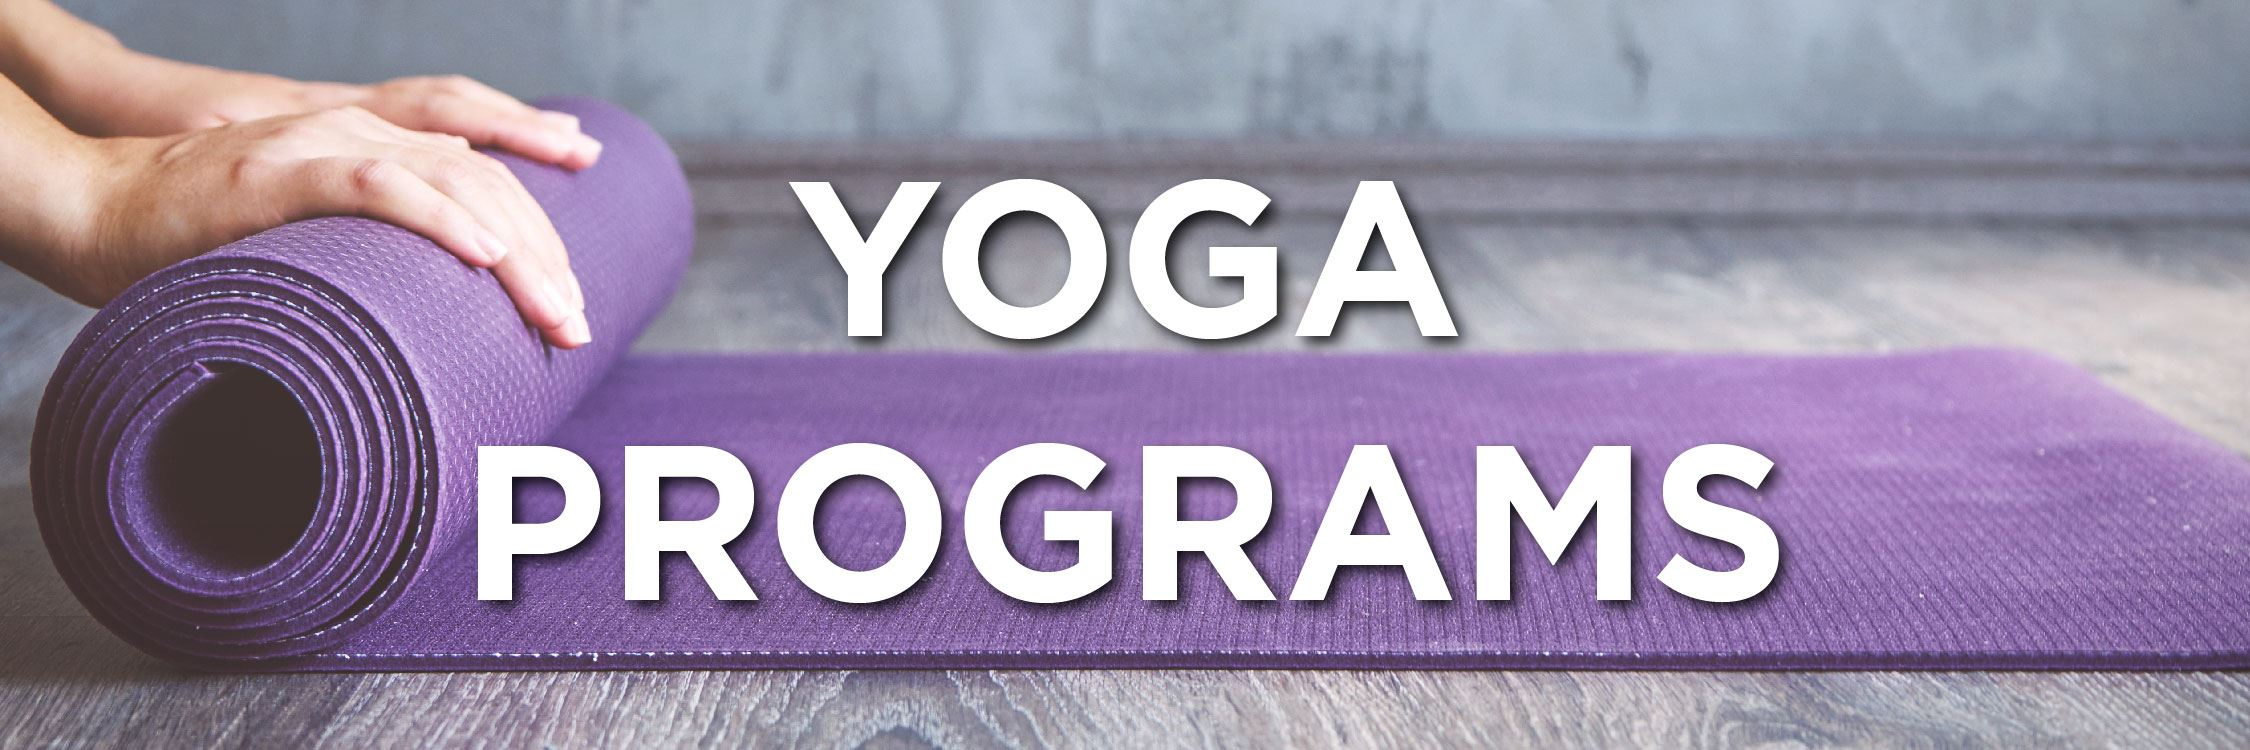 Yoga Programs Web Strip-06